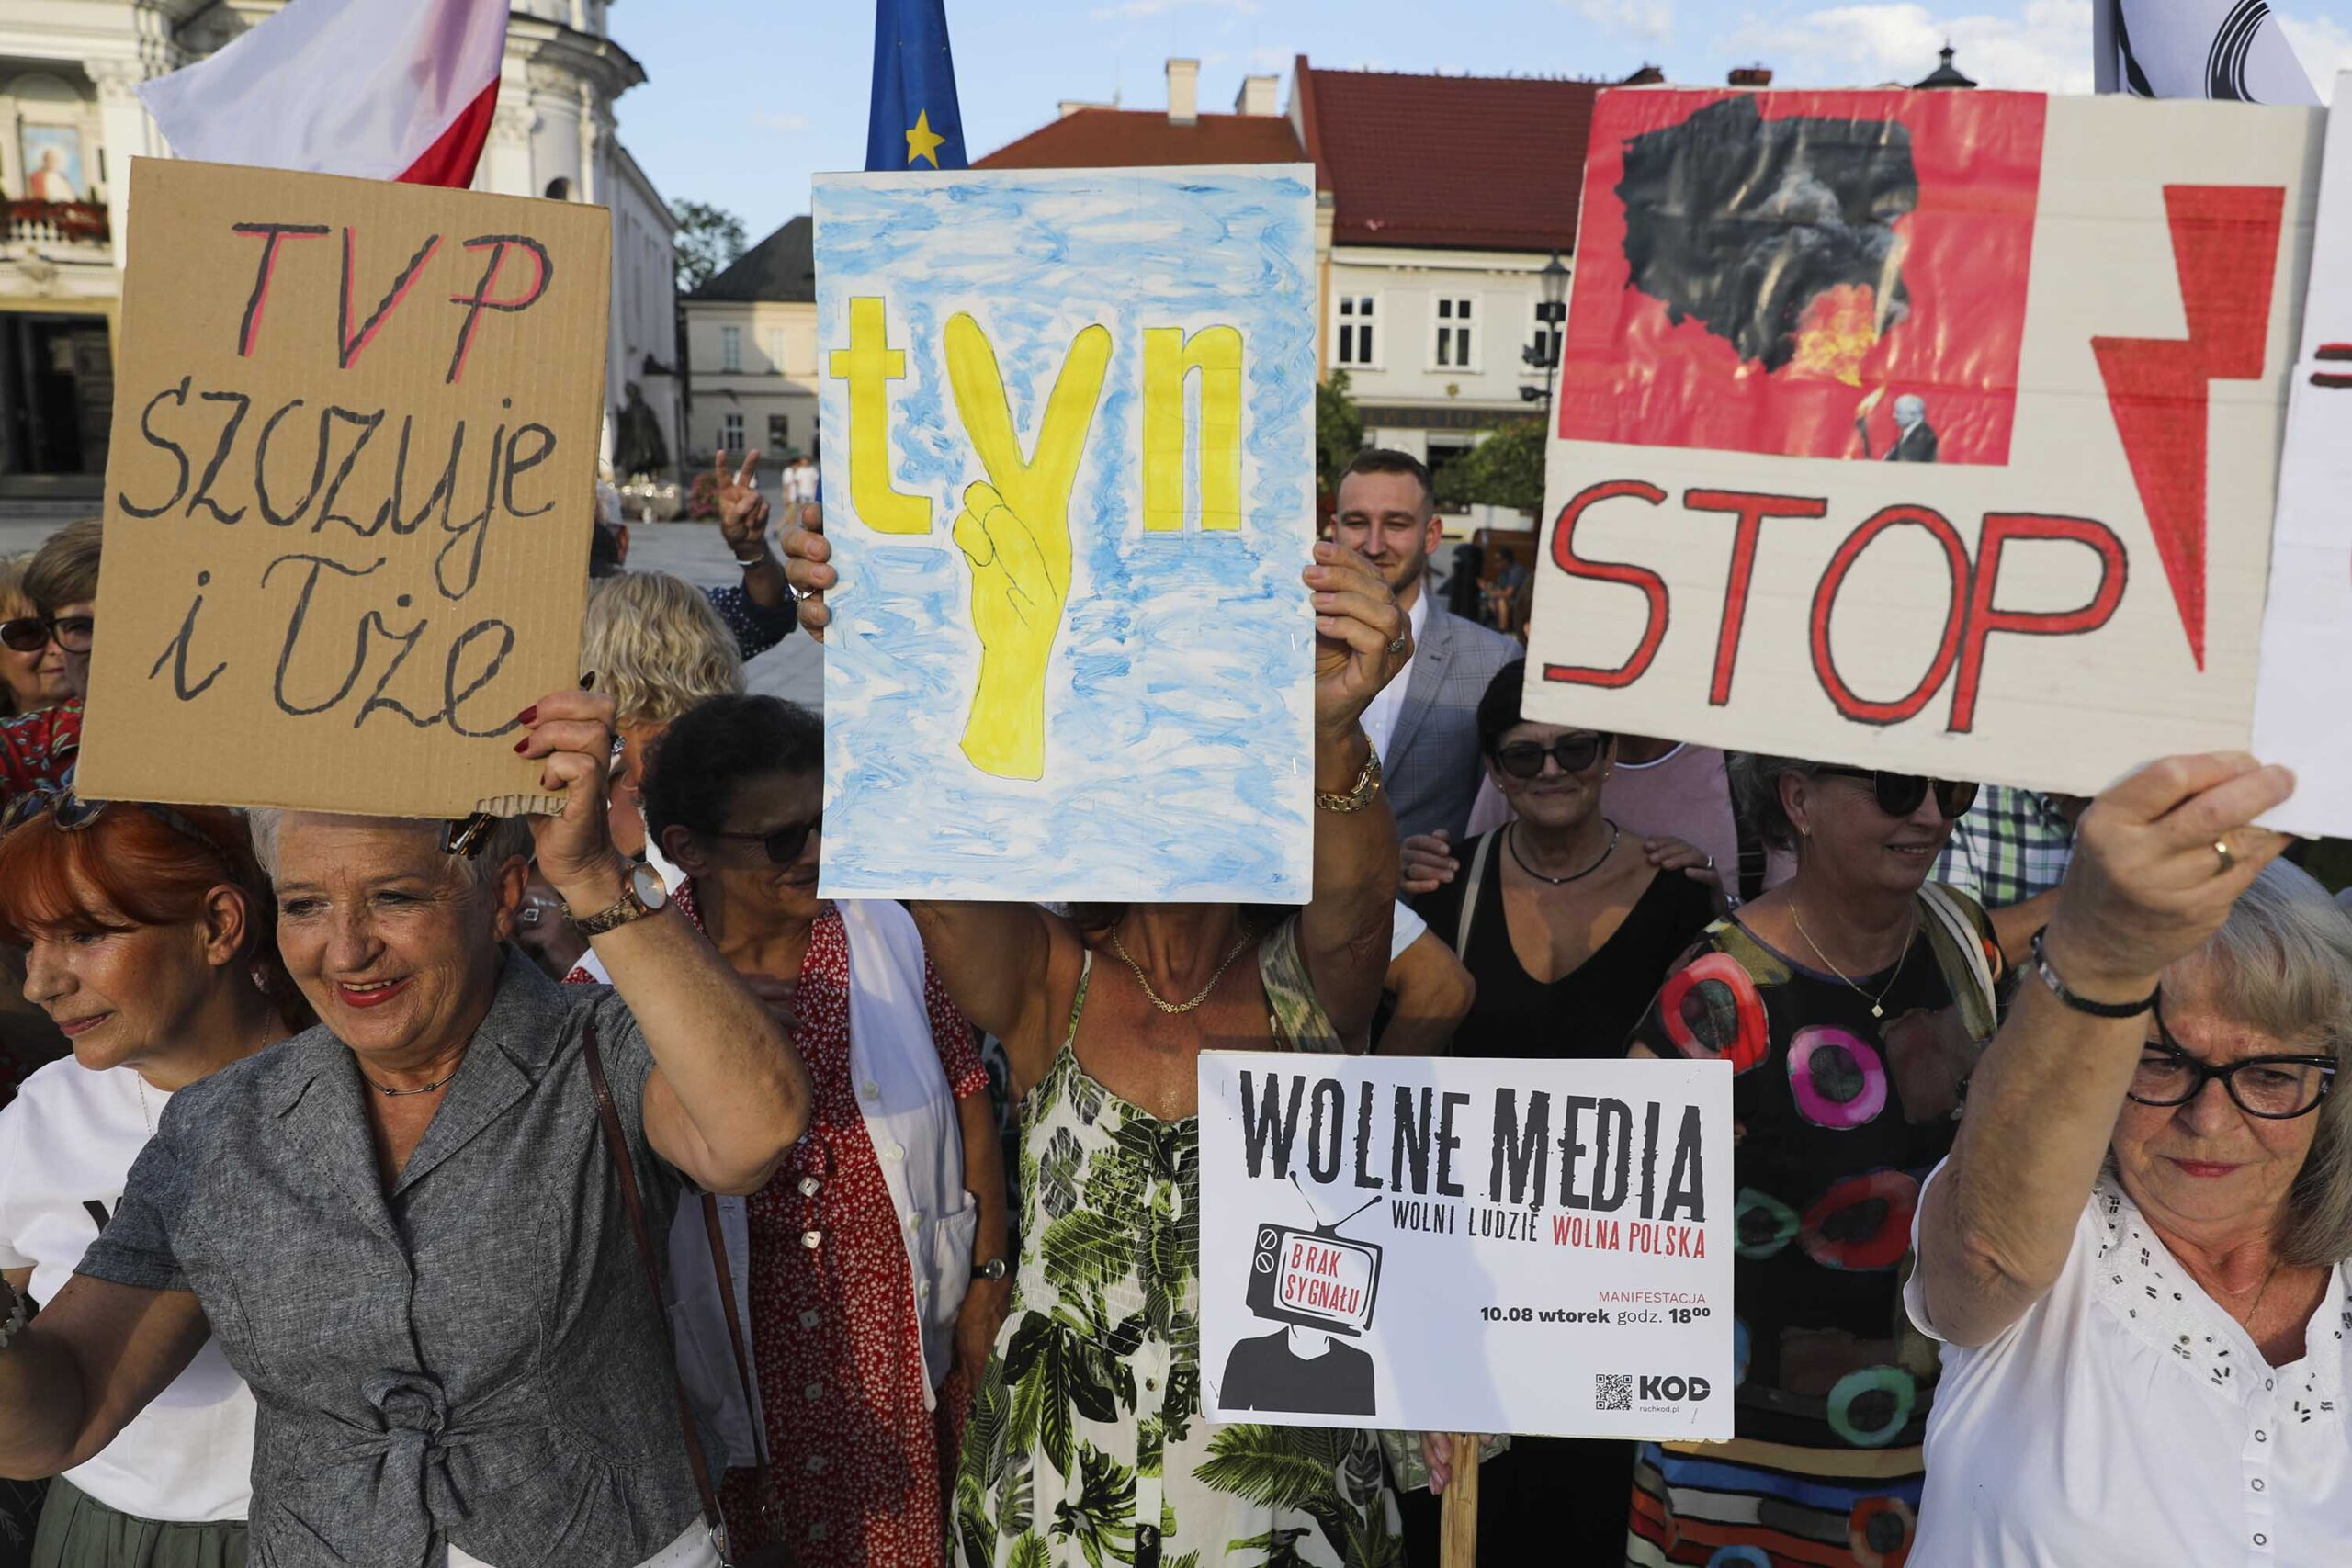 <i>Beata Zawrzel/NurPhoto/Getty Images</i><br/>People protest in Poland this week against a media reform bill that could force Discovery to sell its majority stake in independent Polish broadcaster TVN24.